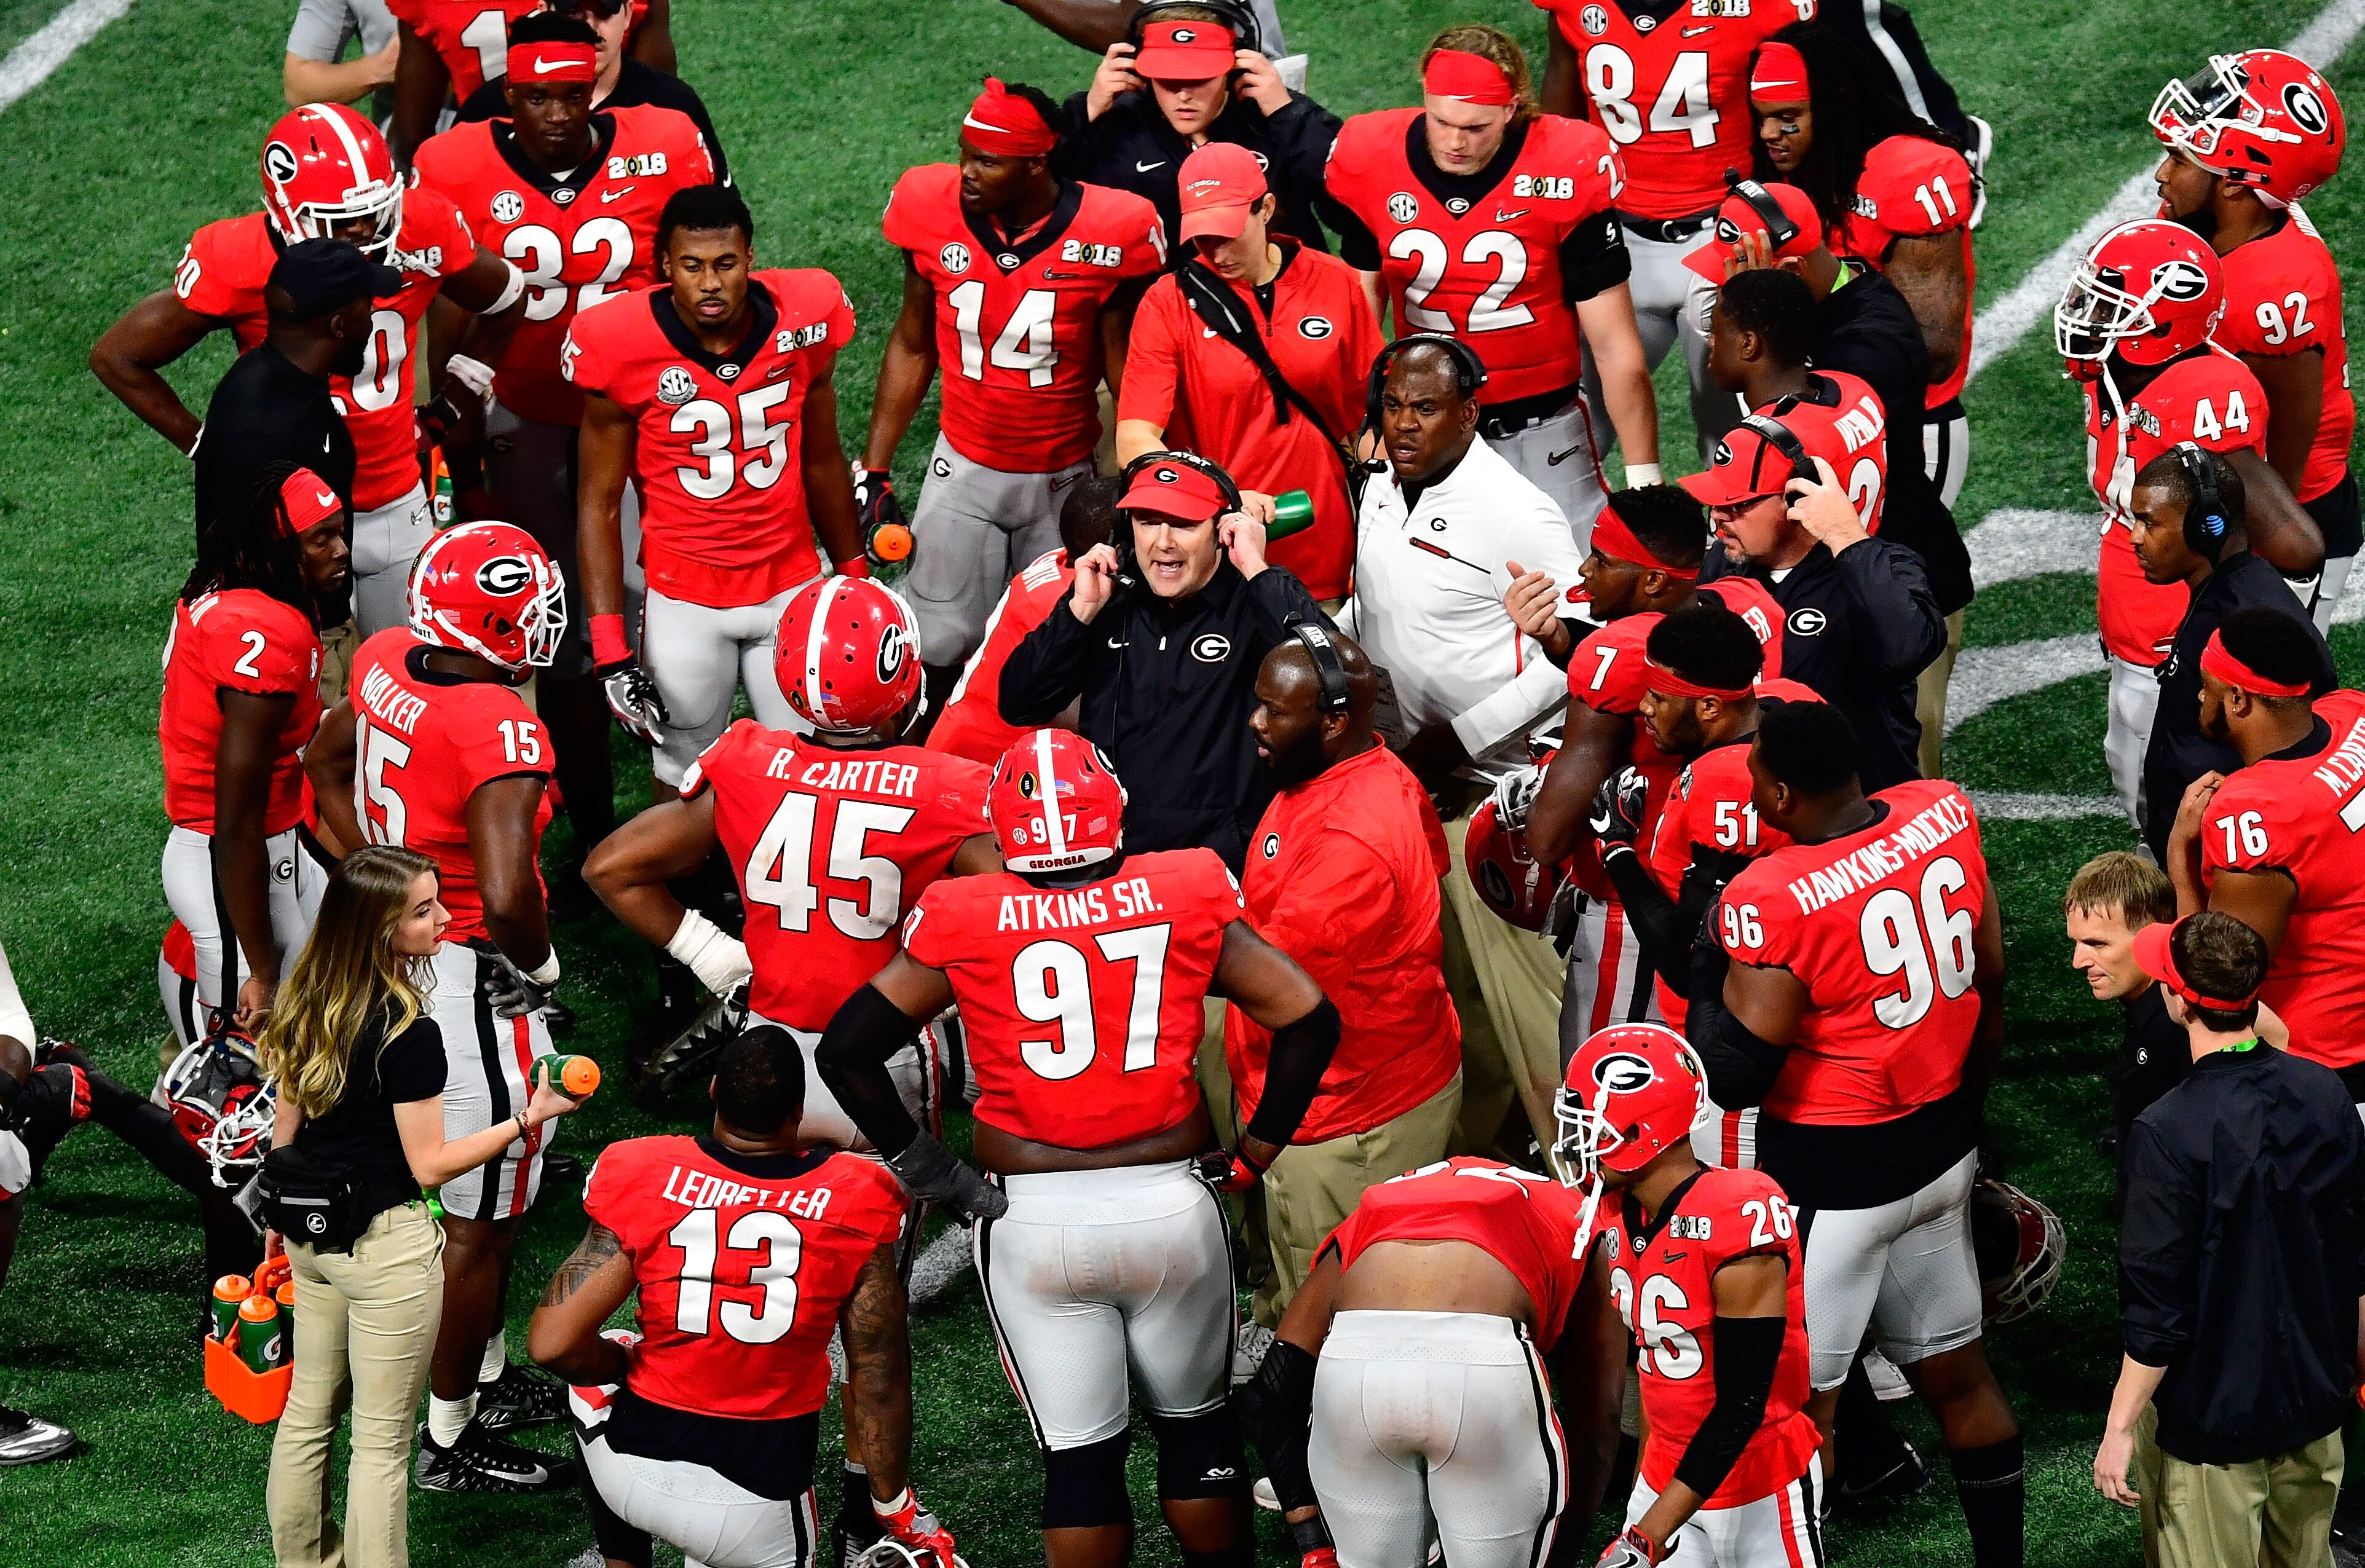 Georgia football now has four no. 1 players with rankings shift